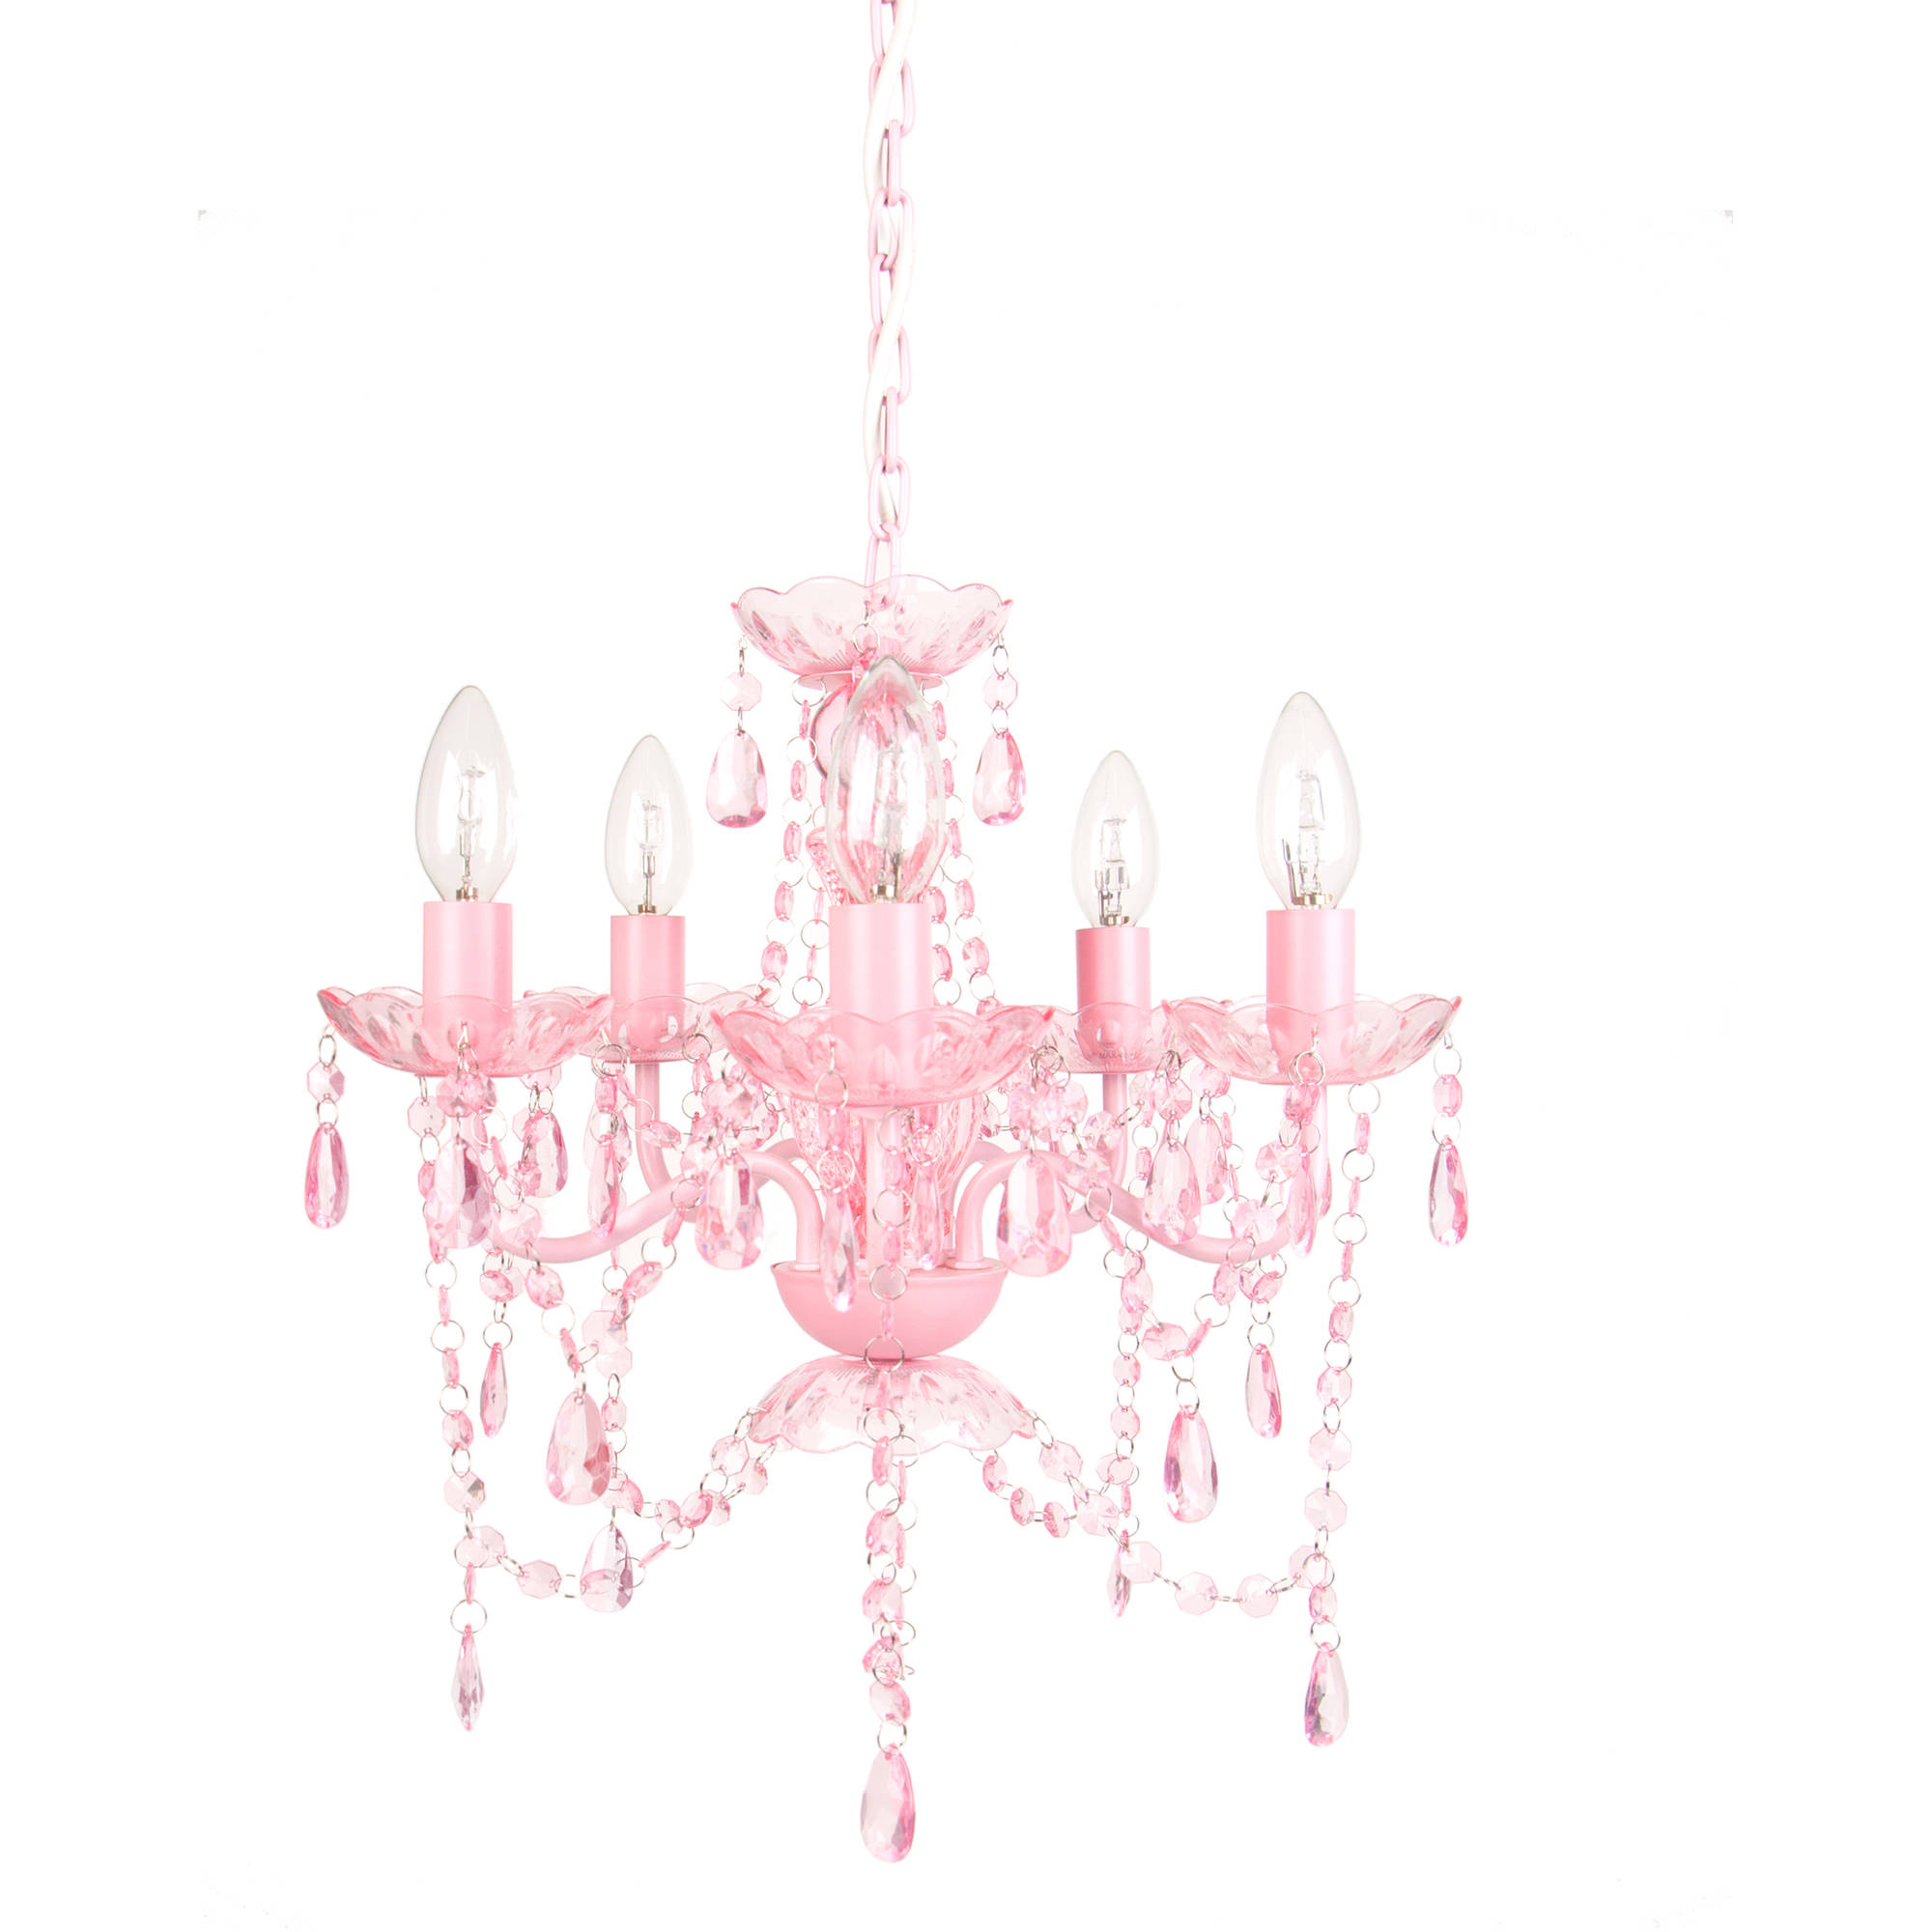 Tadpoles 5-Bulb Chandelier, Pink Sapphire by Sleeping Partners